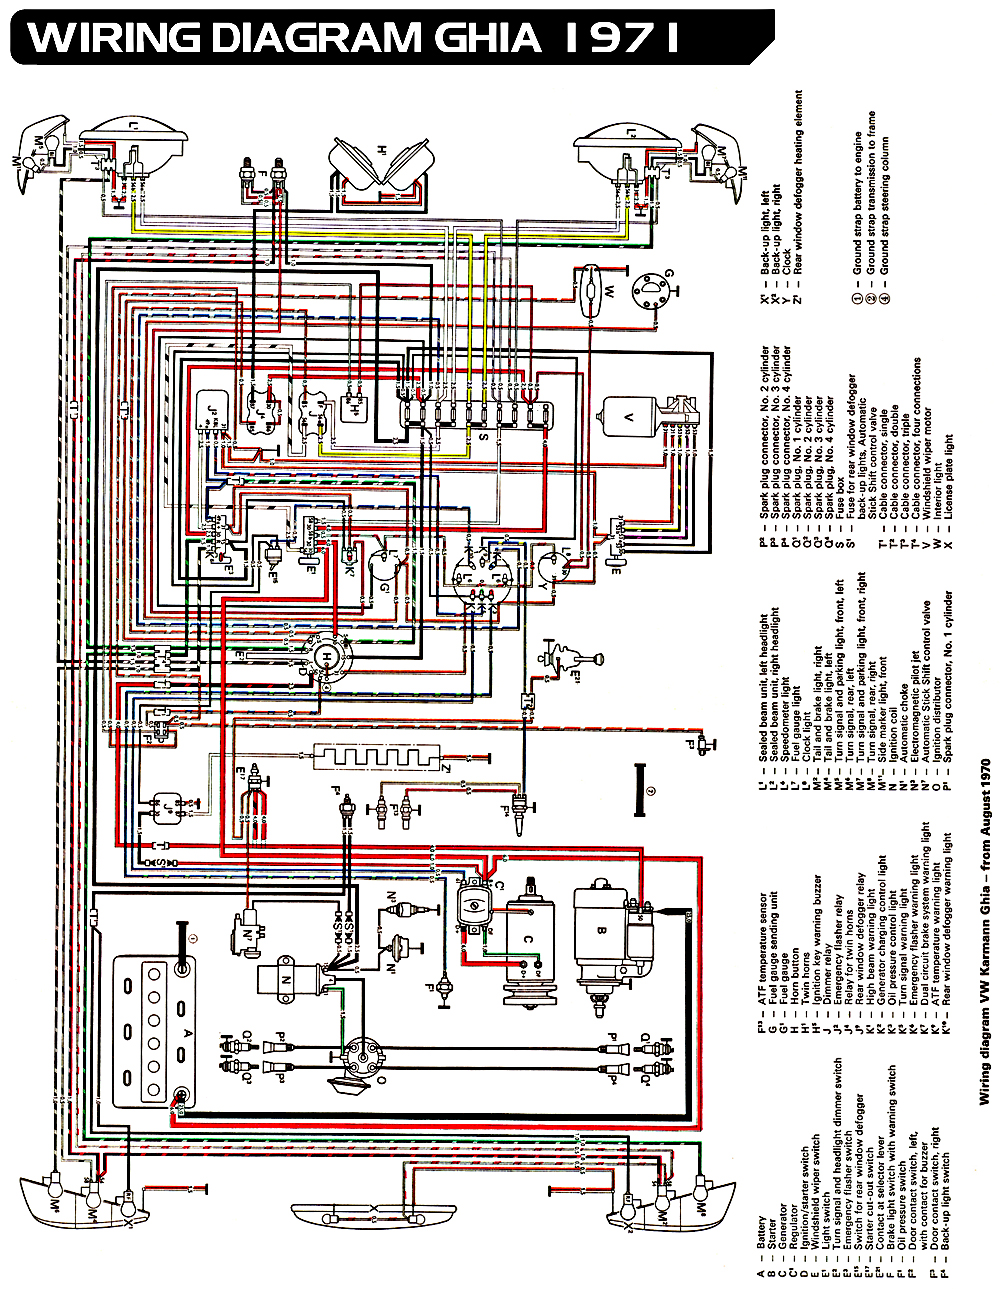 fv_5476] bug headlight relay wiring diagram on 71 karmann ghia wiring  diagram schematic wiring  hison ospor tool tixat mohammedshrine librar wiring 101